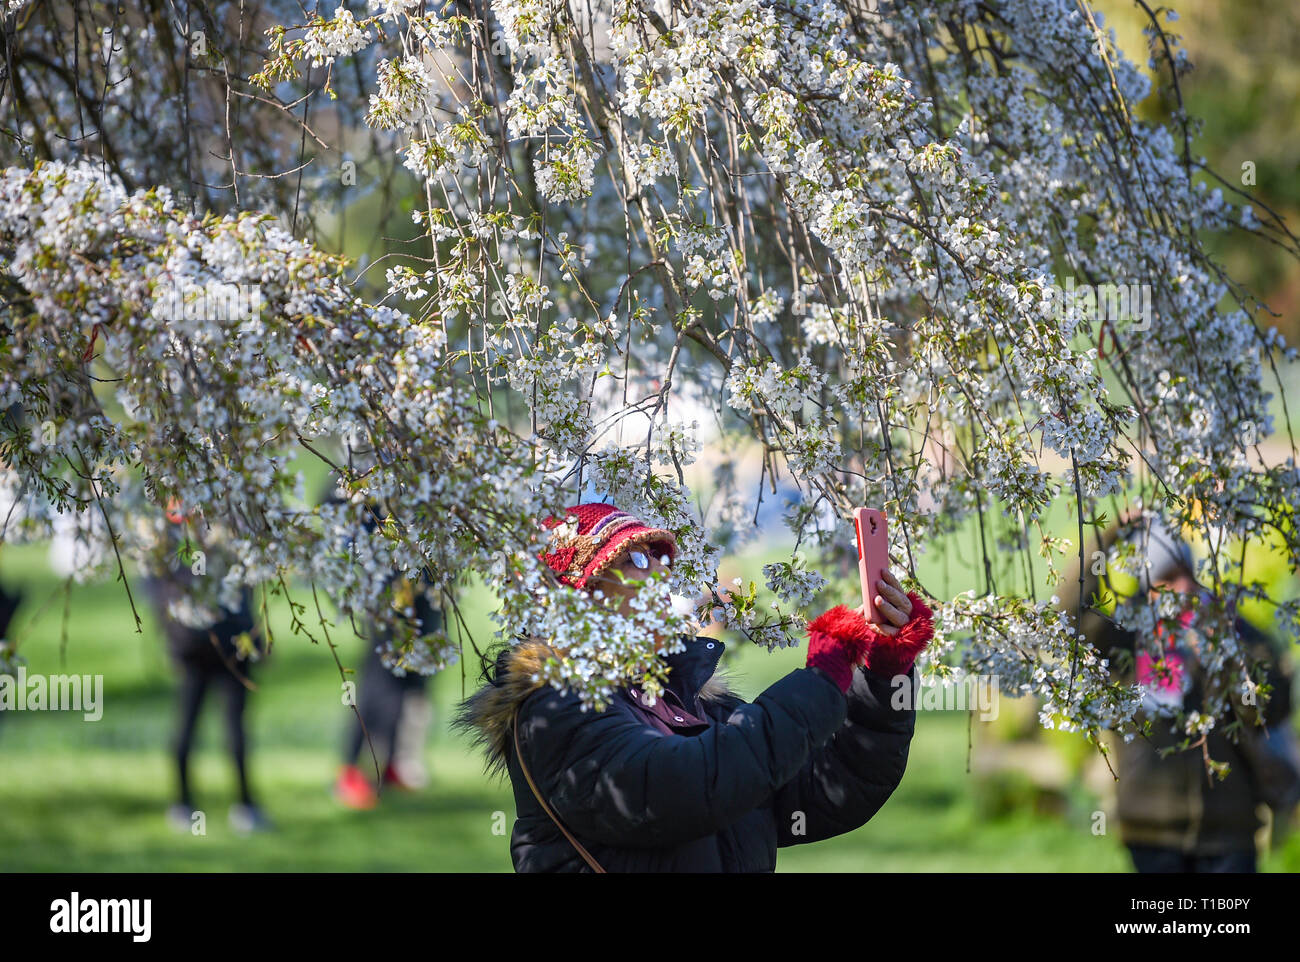 Brighton, UK. 25th Mar, 2019. Visitors enjoy the beautiful Spring sunshine and tree blossom in Pavilion Gardens today as the weather is forecast to warm up throughout Britain over the next few days Credit: Simon Dack/Alamy Live News Stock Photo